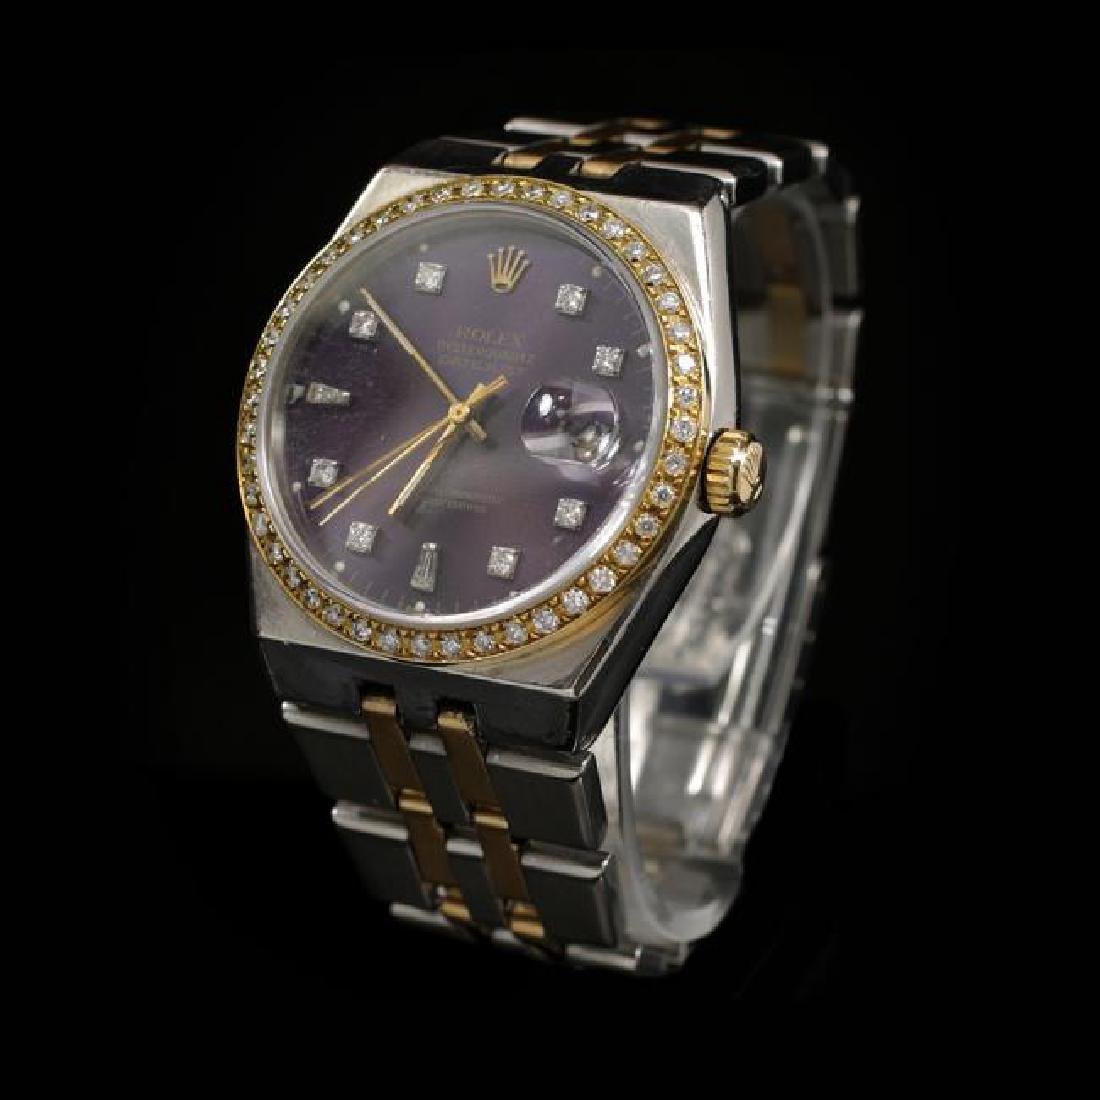 Rolex DateJust Two-Tone Quartz Model 36mm Custom - 2